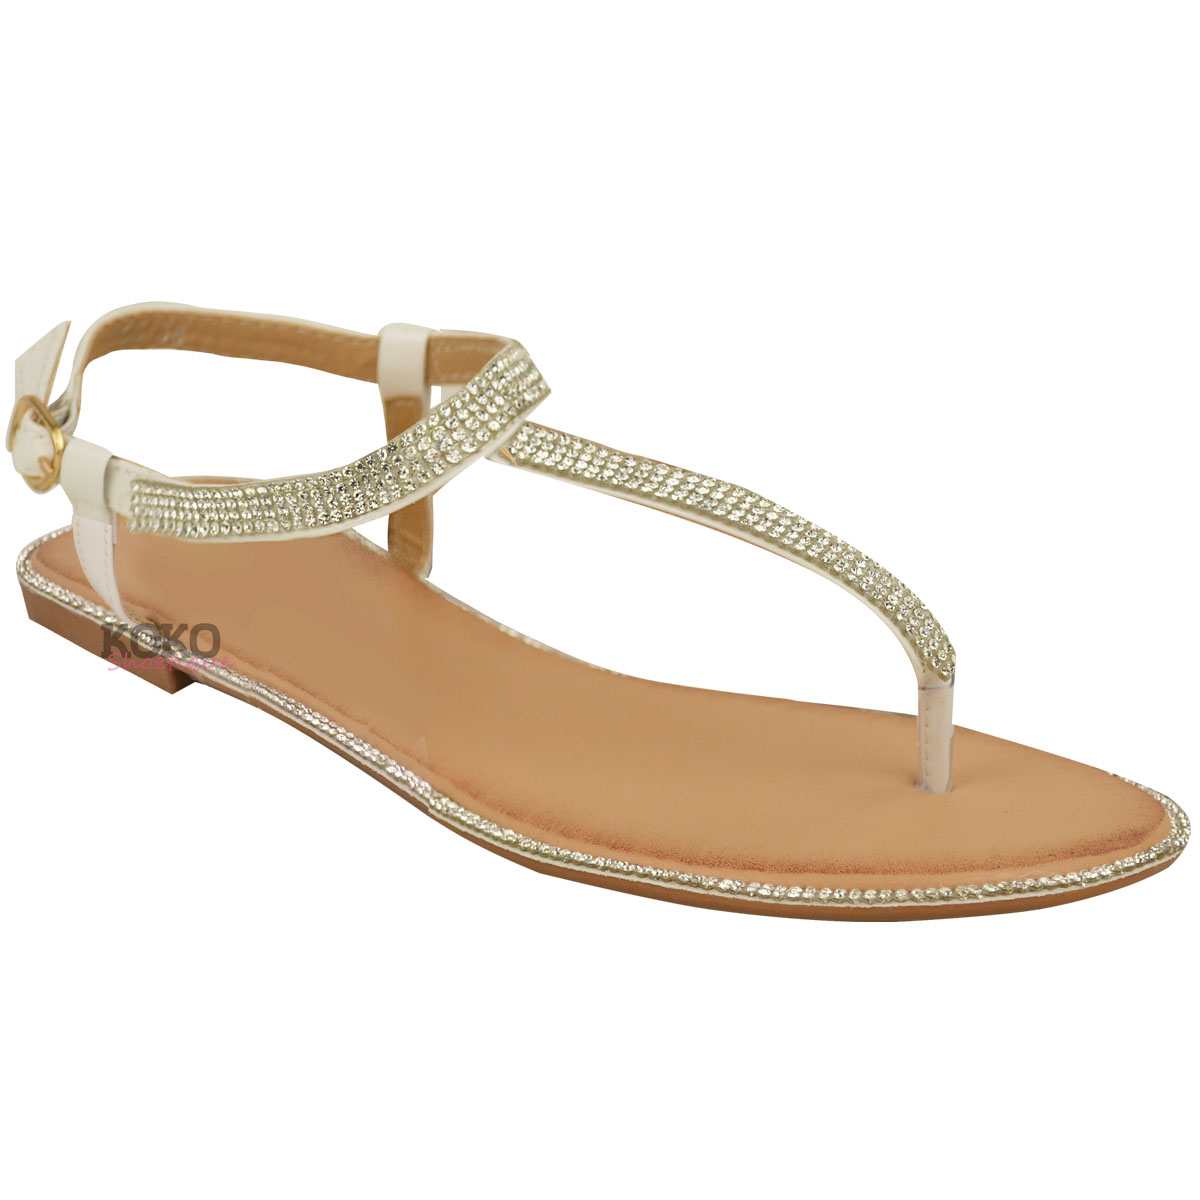 Creative Flat Sandals Are One Of Indispensable Accessories For Women In Summer And Spring It Is Appropriate, Comfortable And Cheap Footwear For An Excess Of Events Like An Evening Or Beach Party Generally Women Like To Buy Those Flat